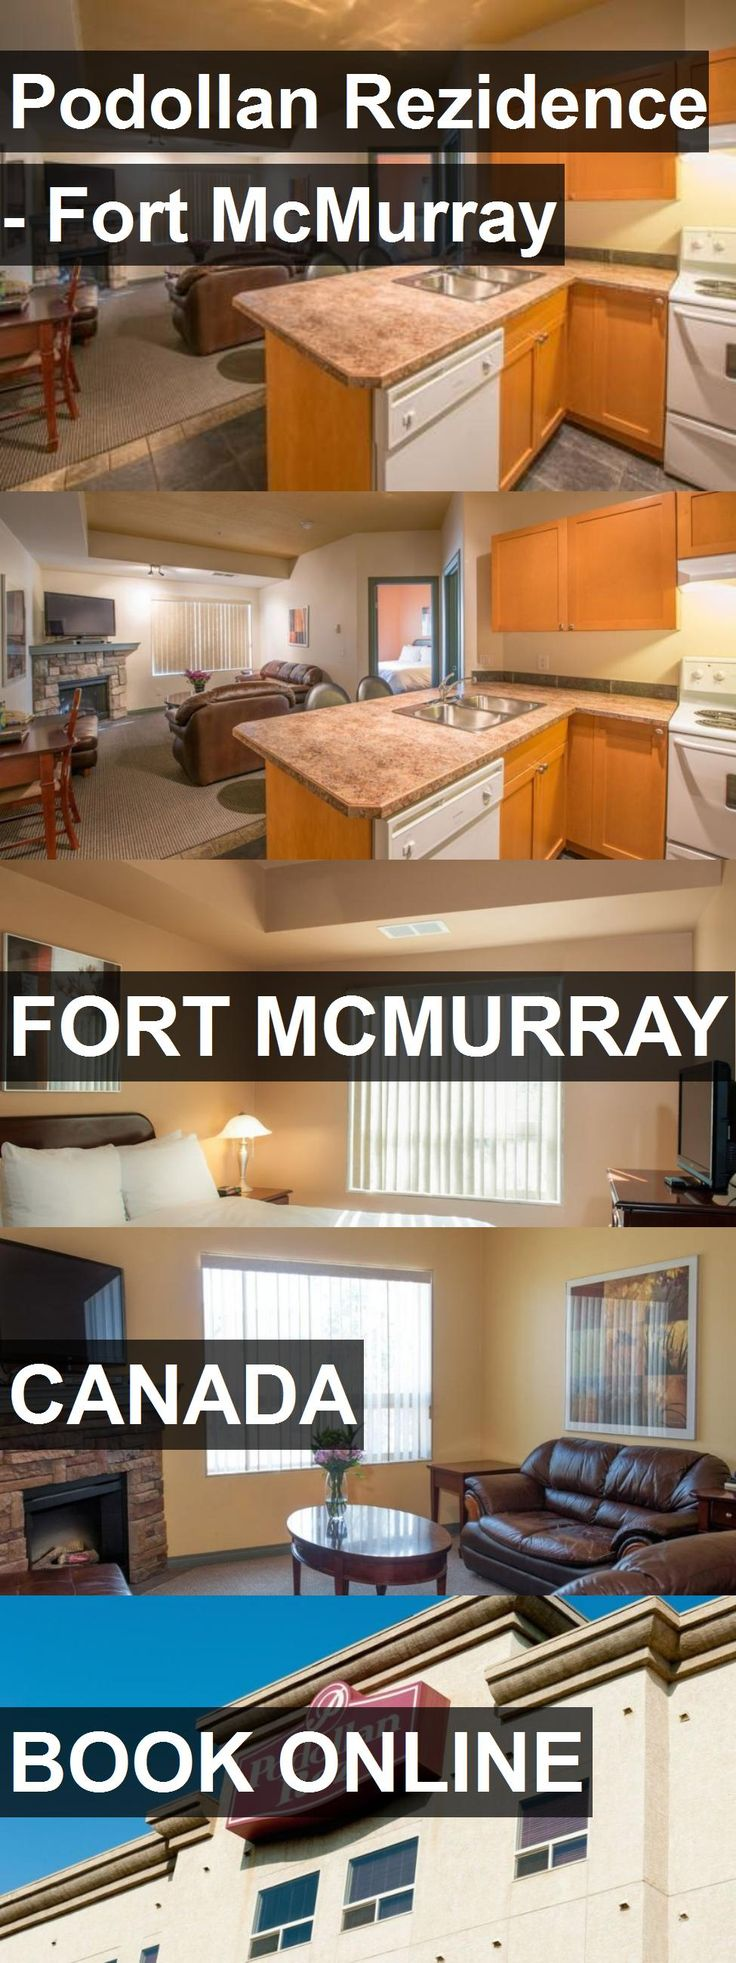 Hotel Podollan Rezidence - Fort McMurray in Fort Mcmurray, Canada. For more information, photos, reviews and best prices please follow the link. #Canada #FortMcmurray #travel #vacation #hotel